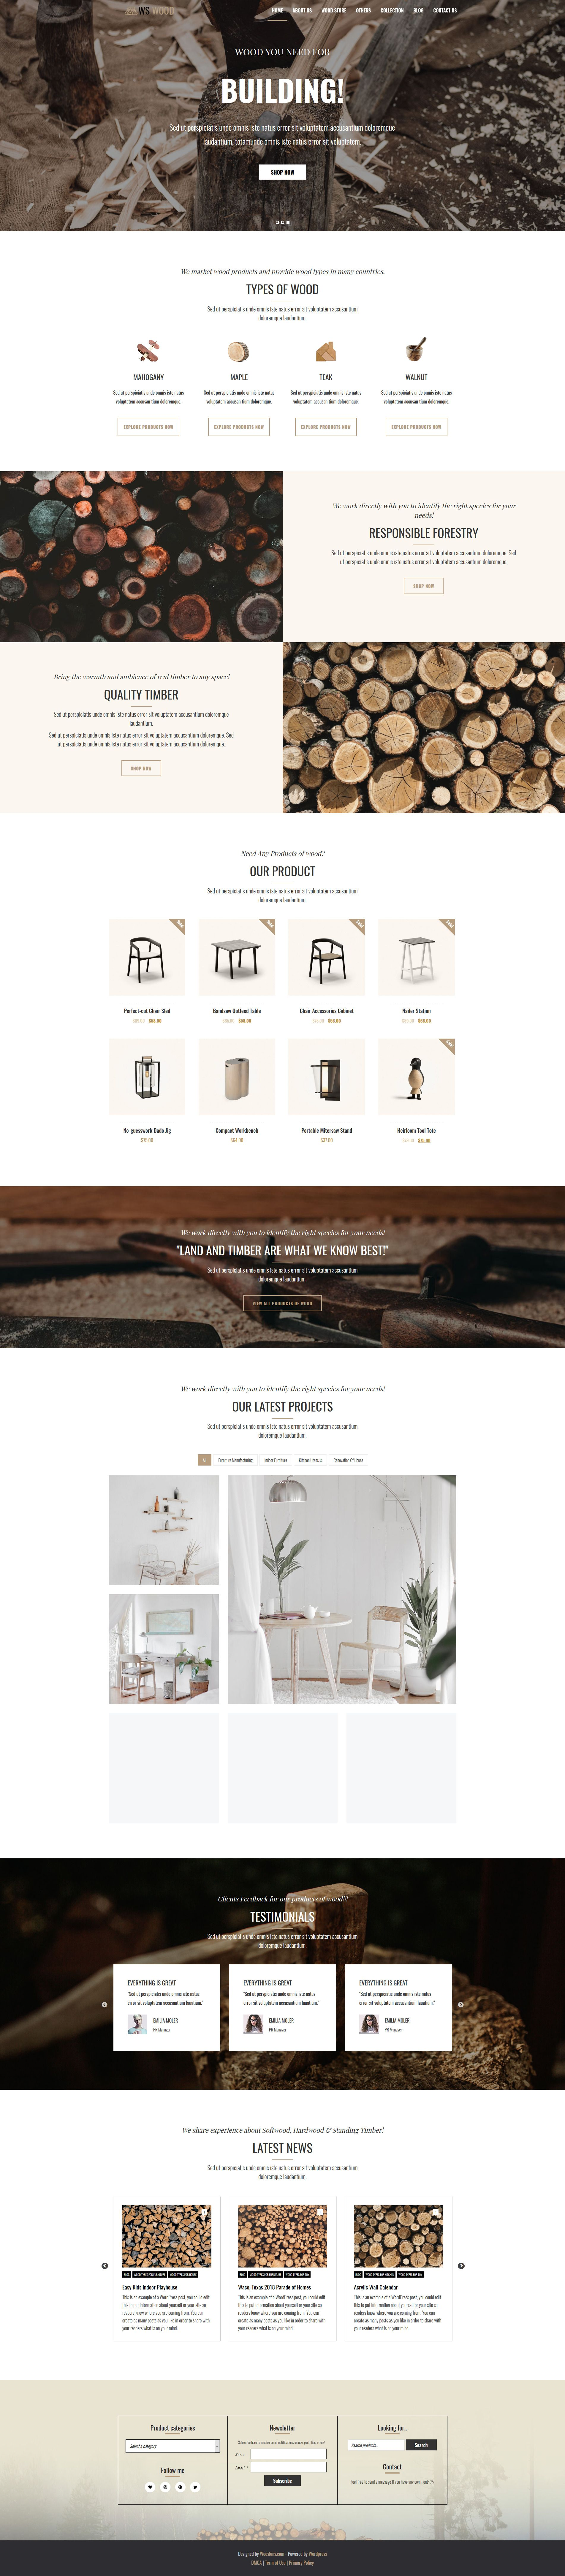 WS Wood - WordPress Theme Screenshot 1